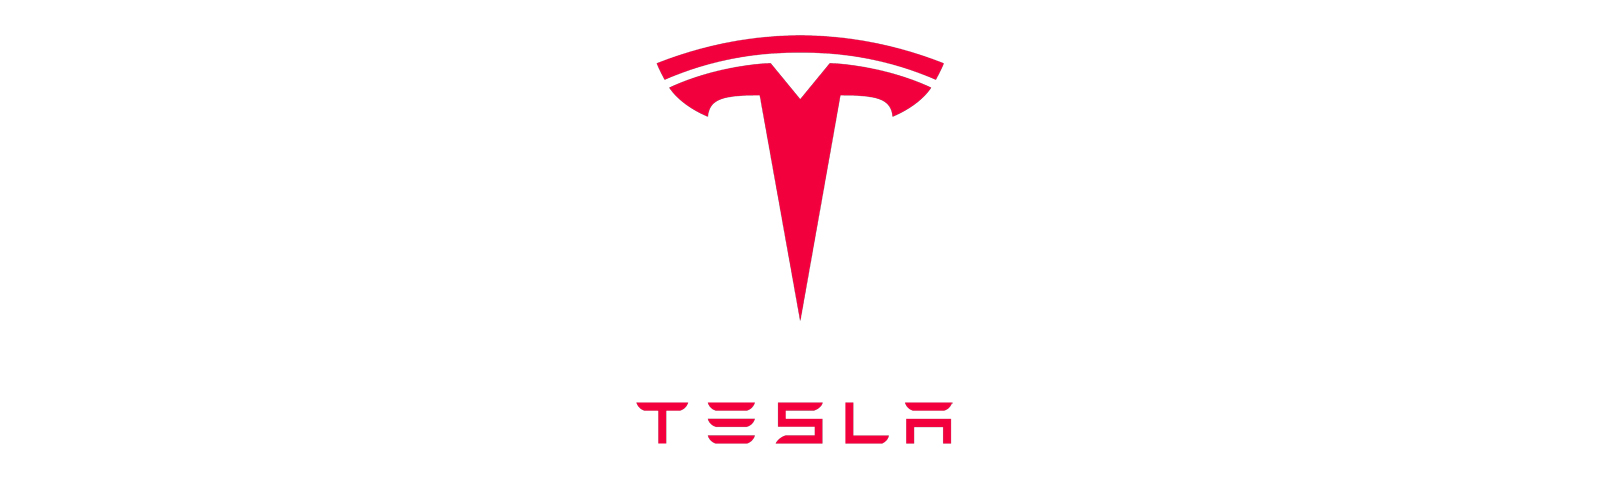 2019 Tesla Model S And 2019 Tesla Model X Specifications Are